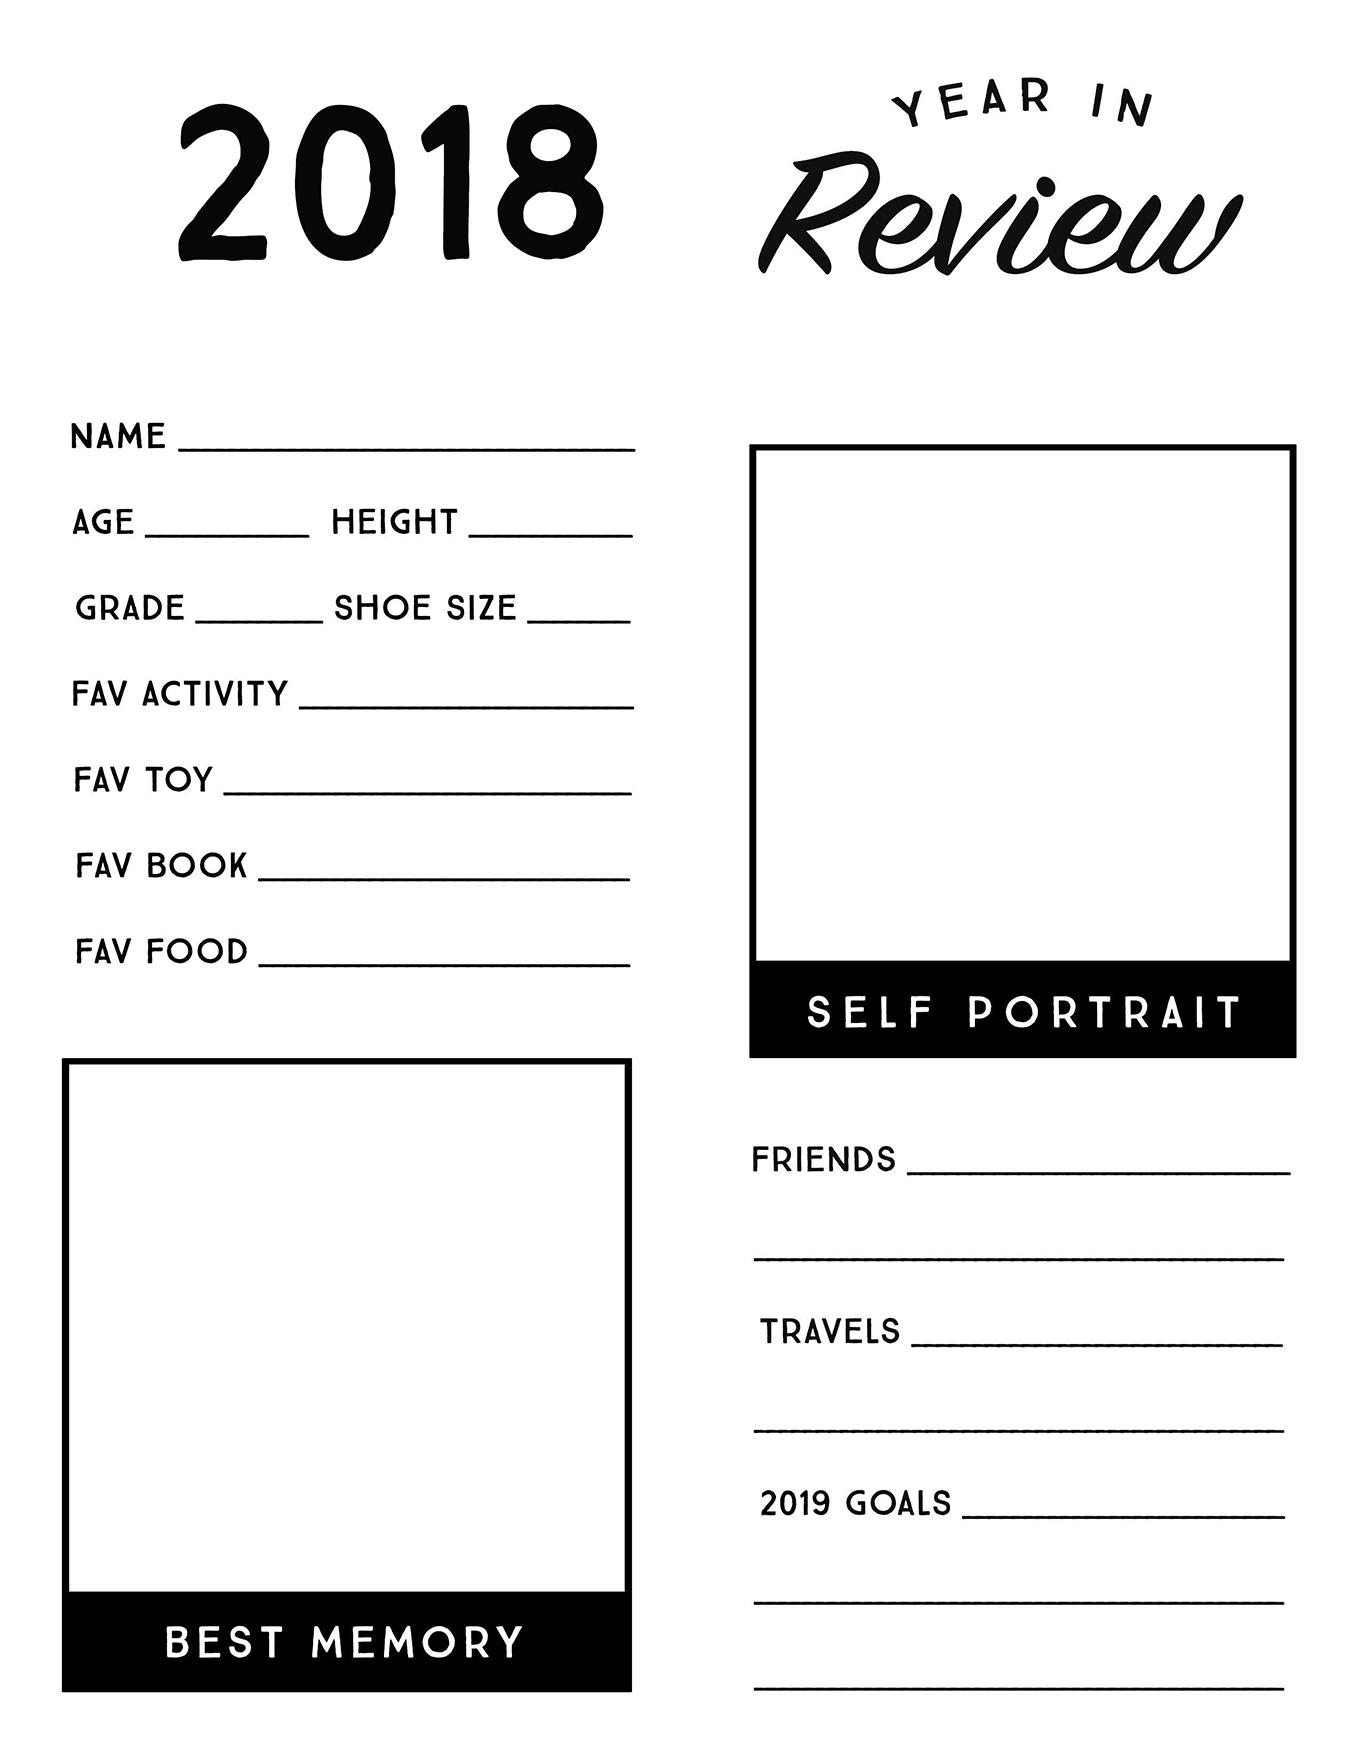 This free printable year in review sheet gives children a chance to reflect on their favorite memories from the past year and look ahead to new goals and adventures in 2019!